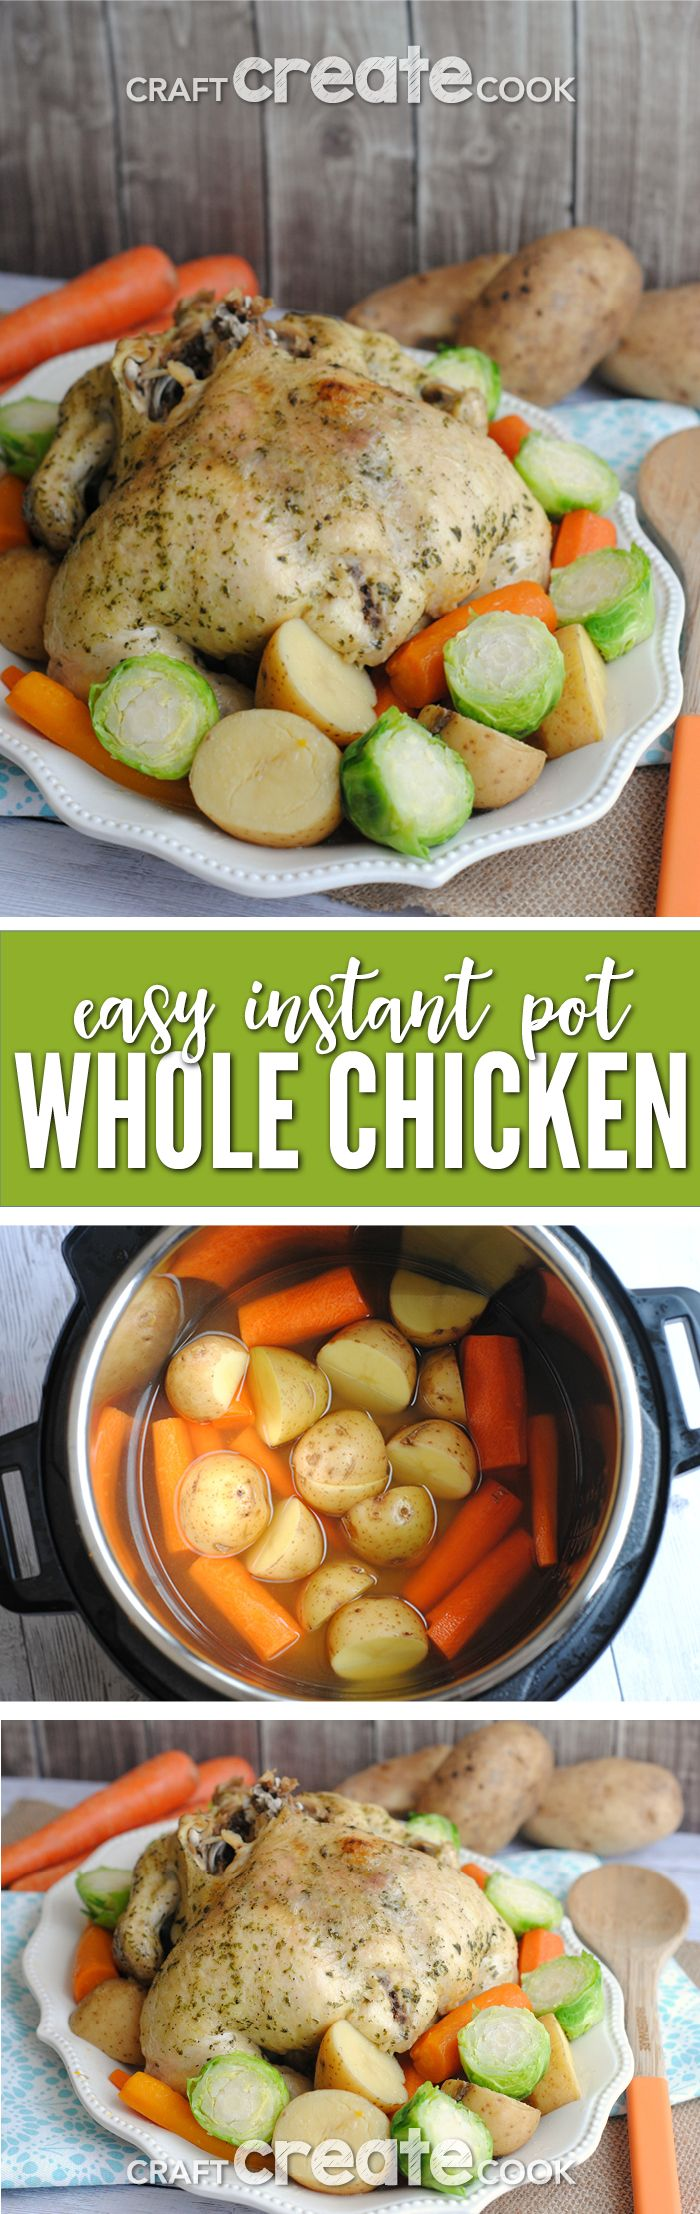 Whole Instant Pot Chicken is a great dinner recipe for busy families! via @CraftCreatCook1